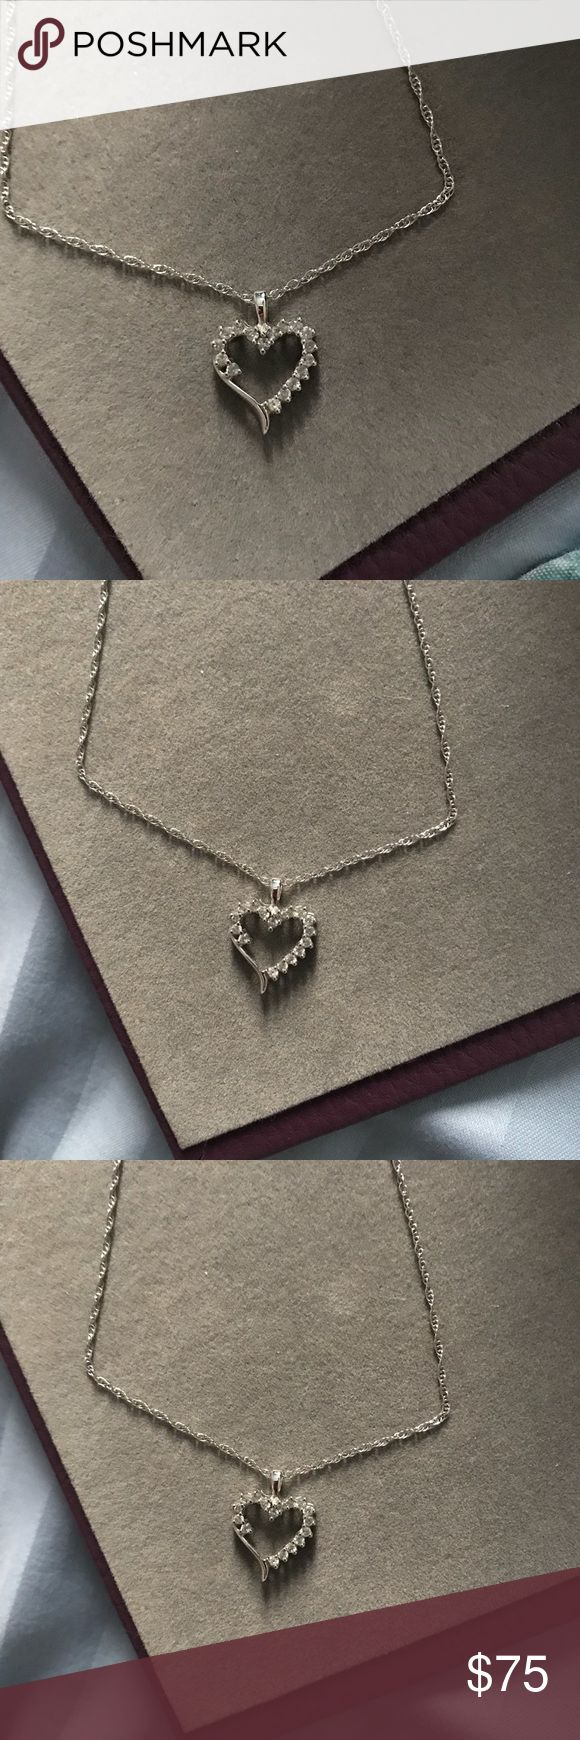 Diamond heart necklace Beautiful diamond heart necklace on a sterling silver chain. Never worn. It's been in my jewelry box and I would love for someone else to enjoy this gorgeous necklace. Open to offers 😊 Kay Jewelers Jewelry Necklaces